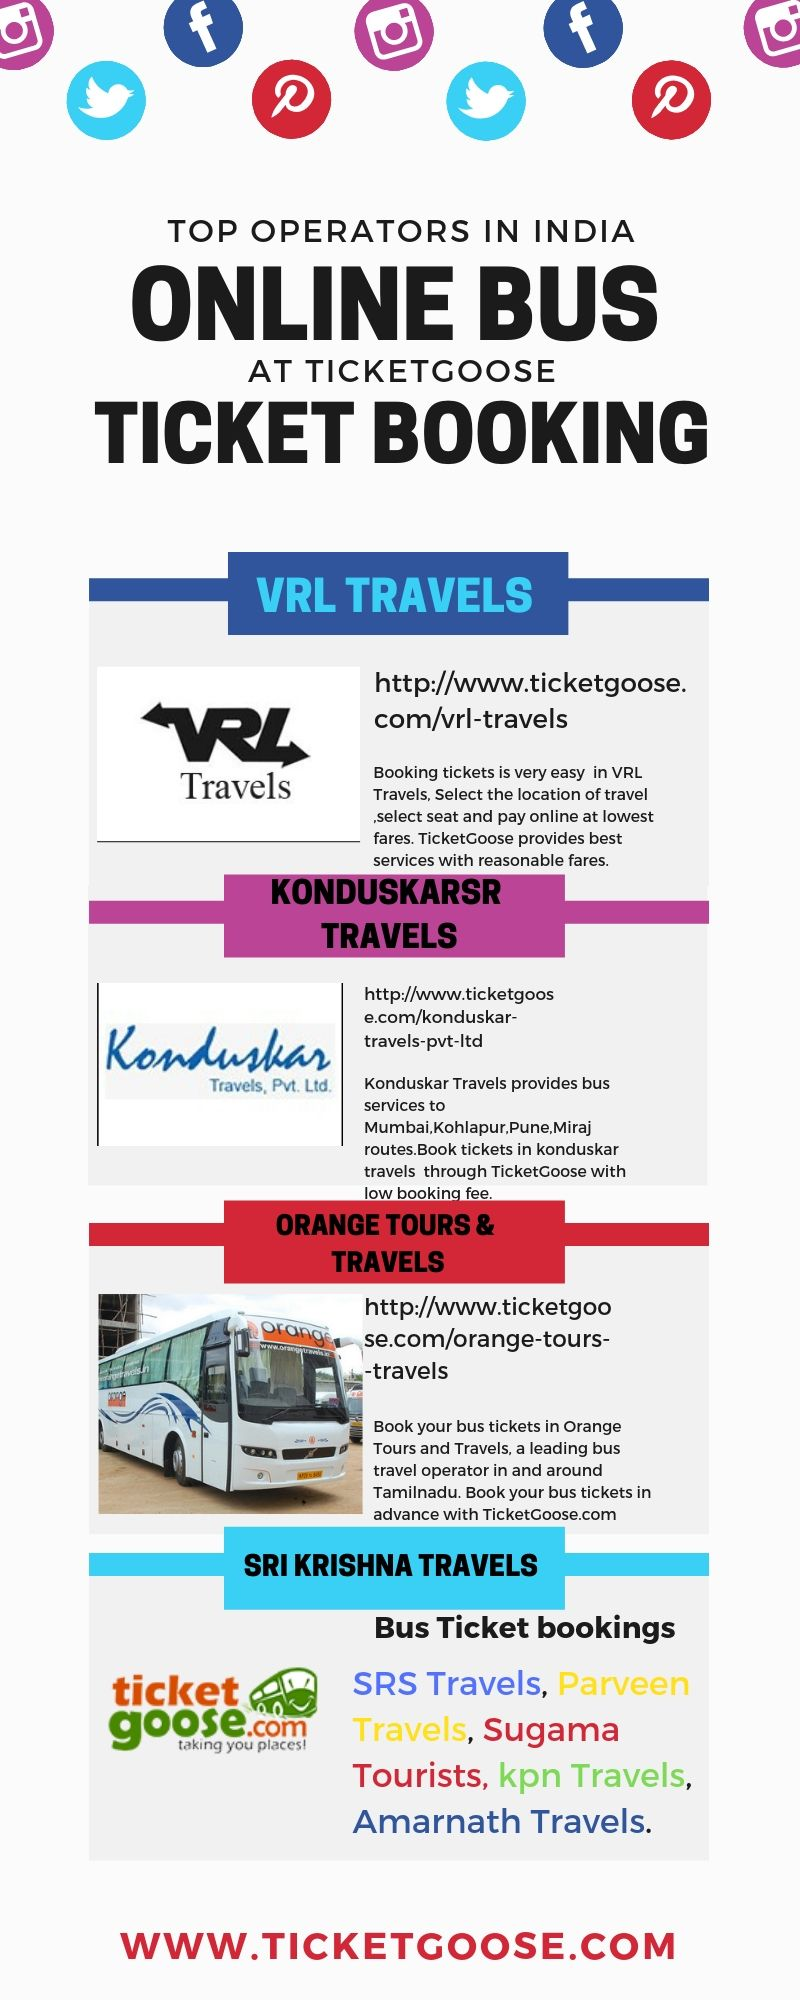 Bus Ticket Booking Ticketgoose Is A Leading Bus Ticketing Portal